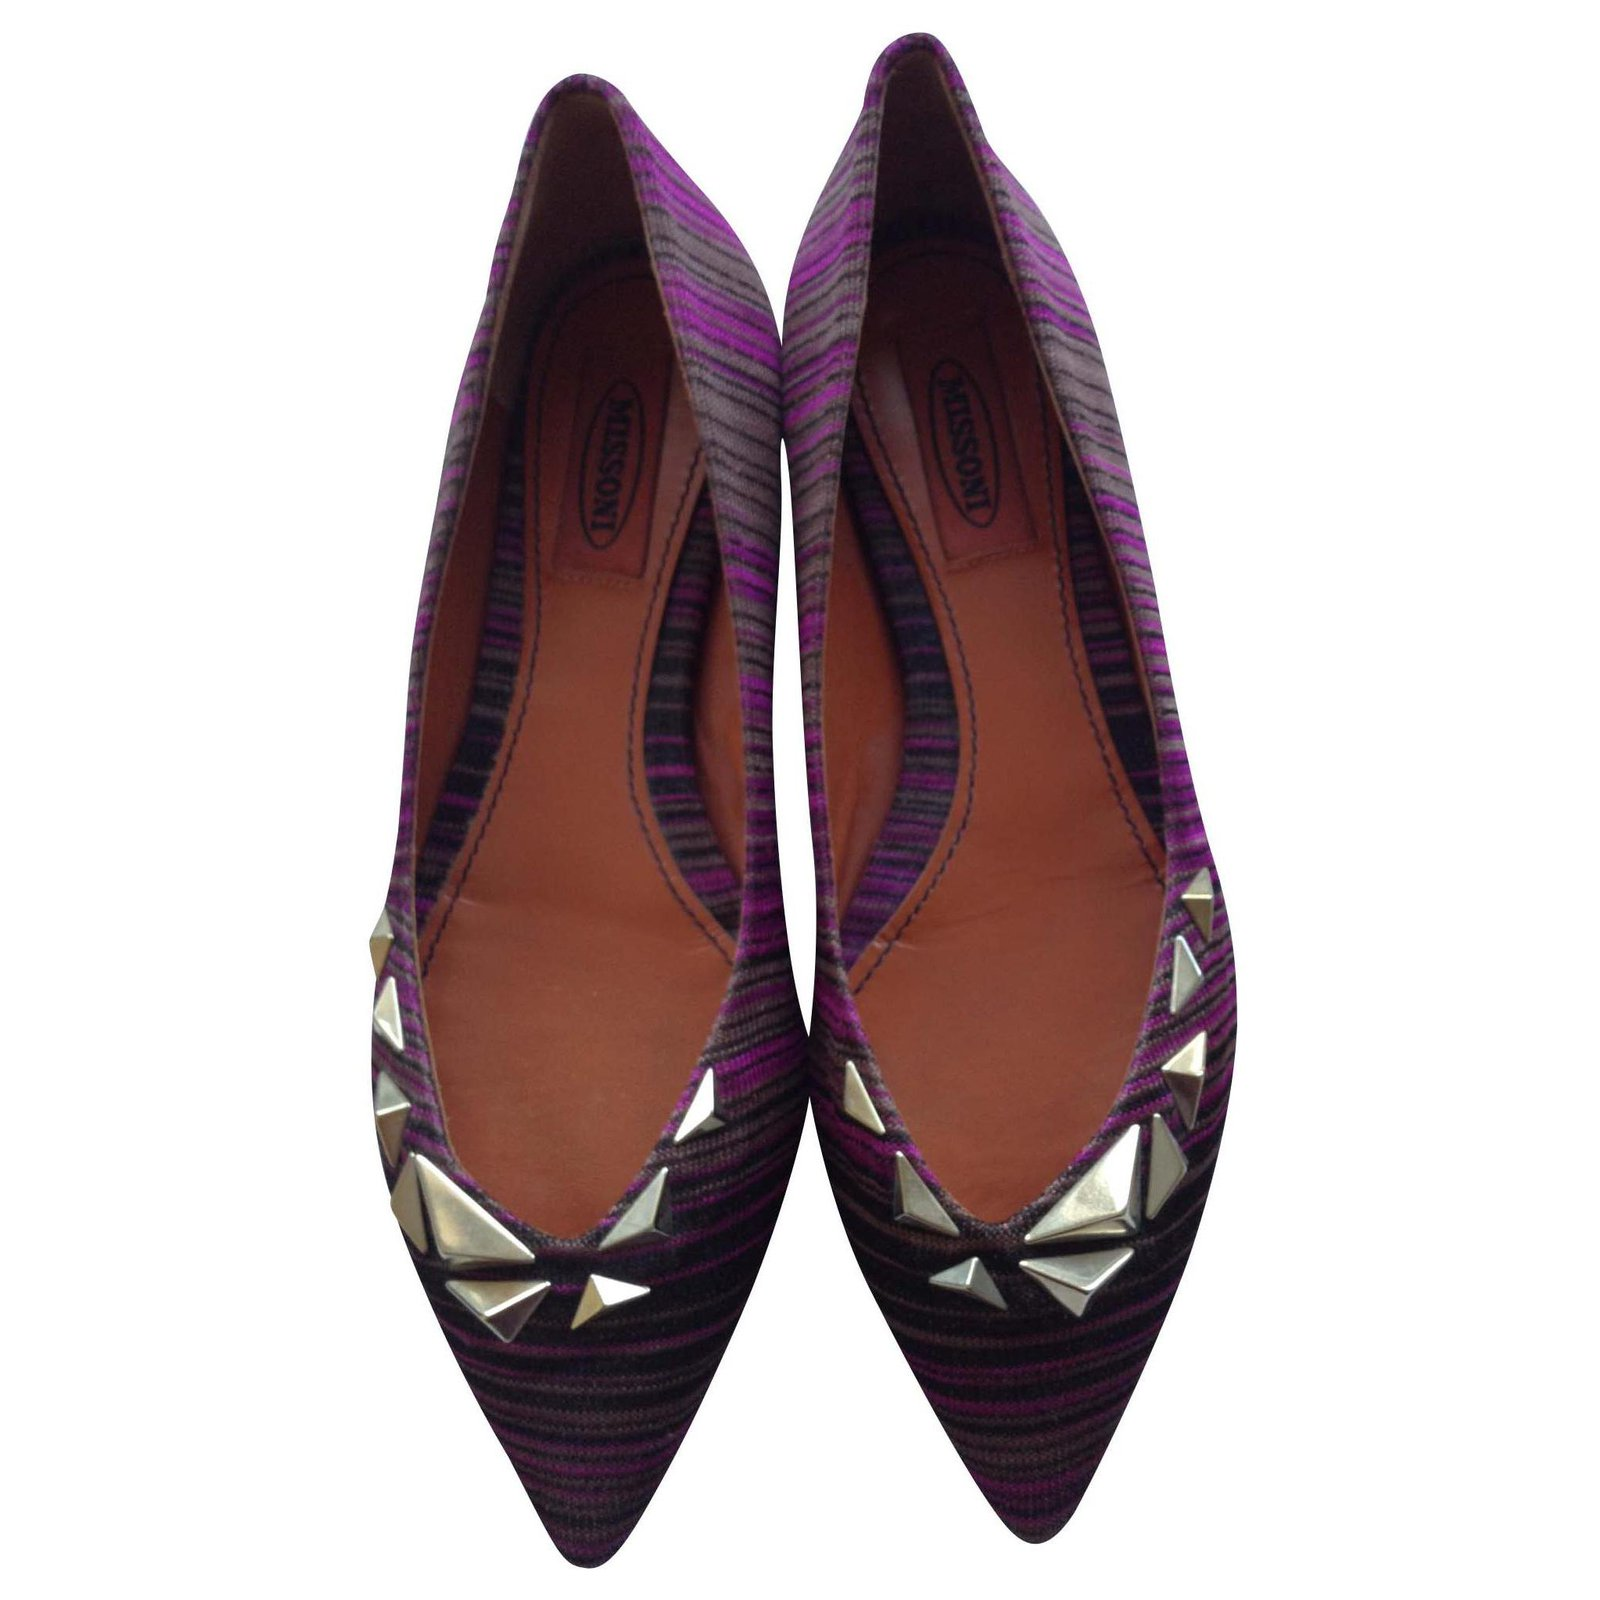 later sells special sales Missoni Pointed Toe Studded Ballet Flats Ballet flats Leather ...